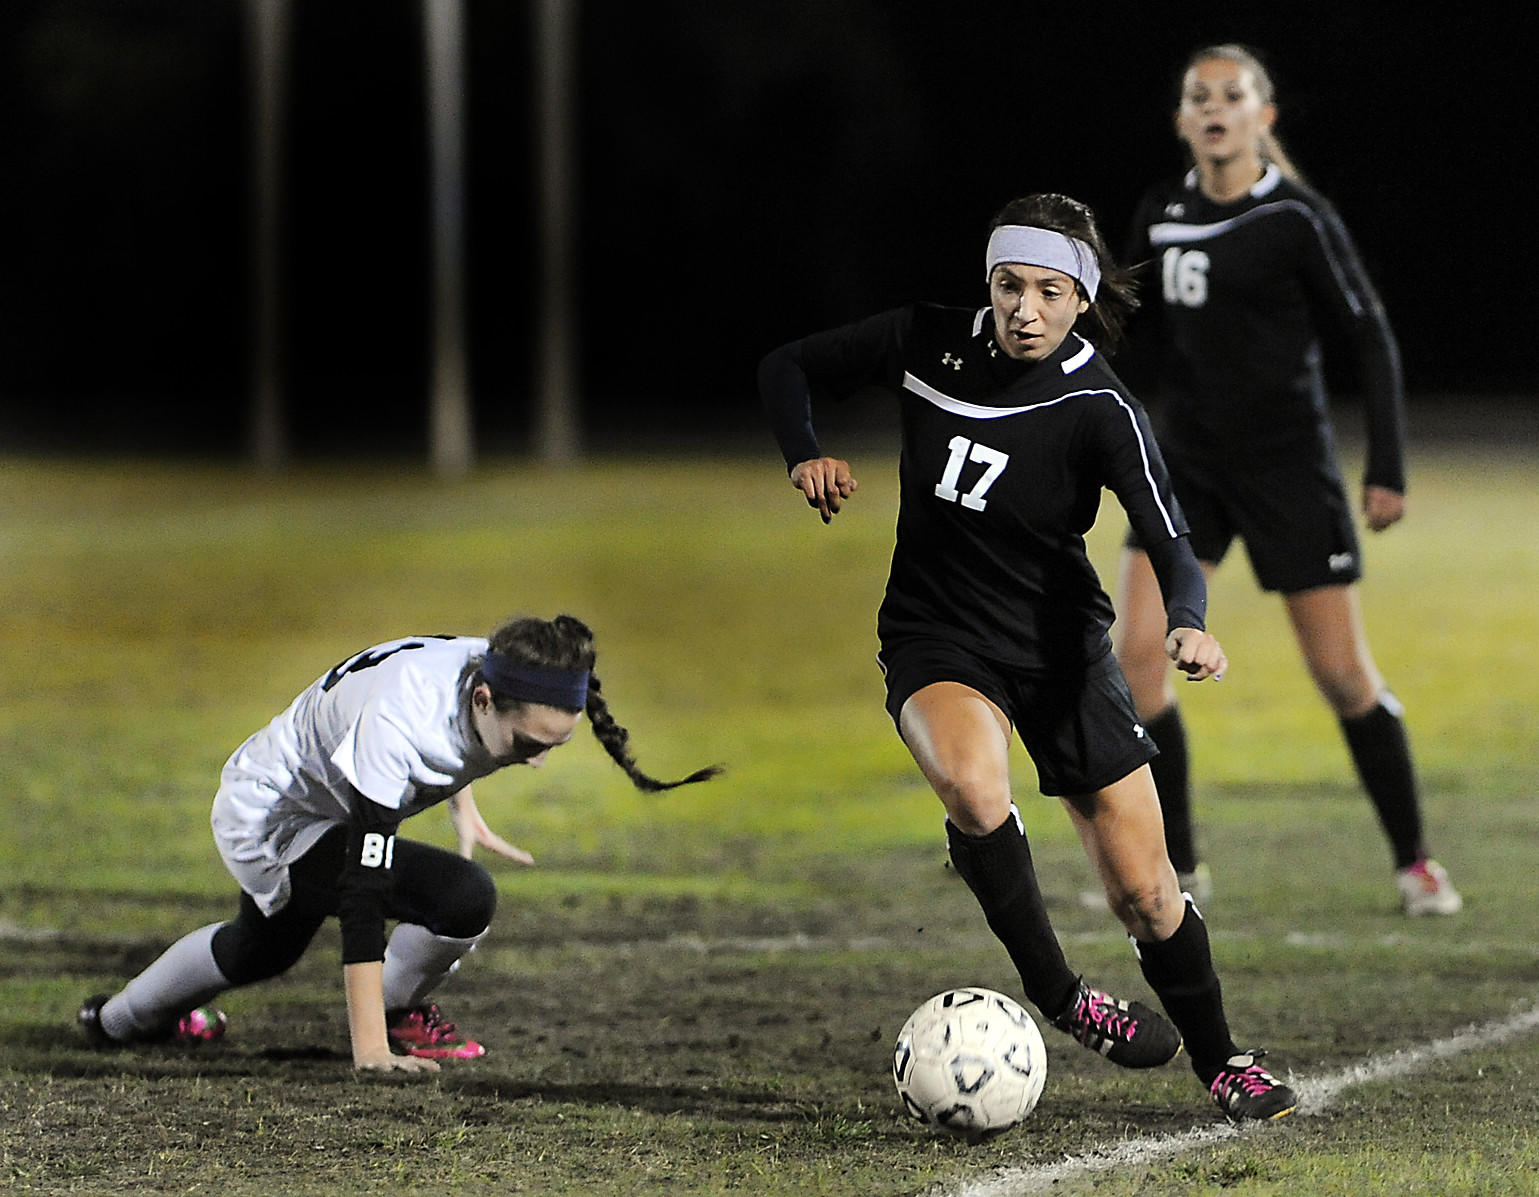 Vanessa Agudelo (No. 17) and her Douglas teammates play host to Park Vista Thursday in the regional quarterfinals.